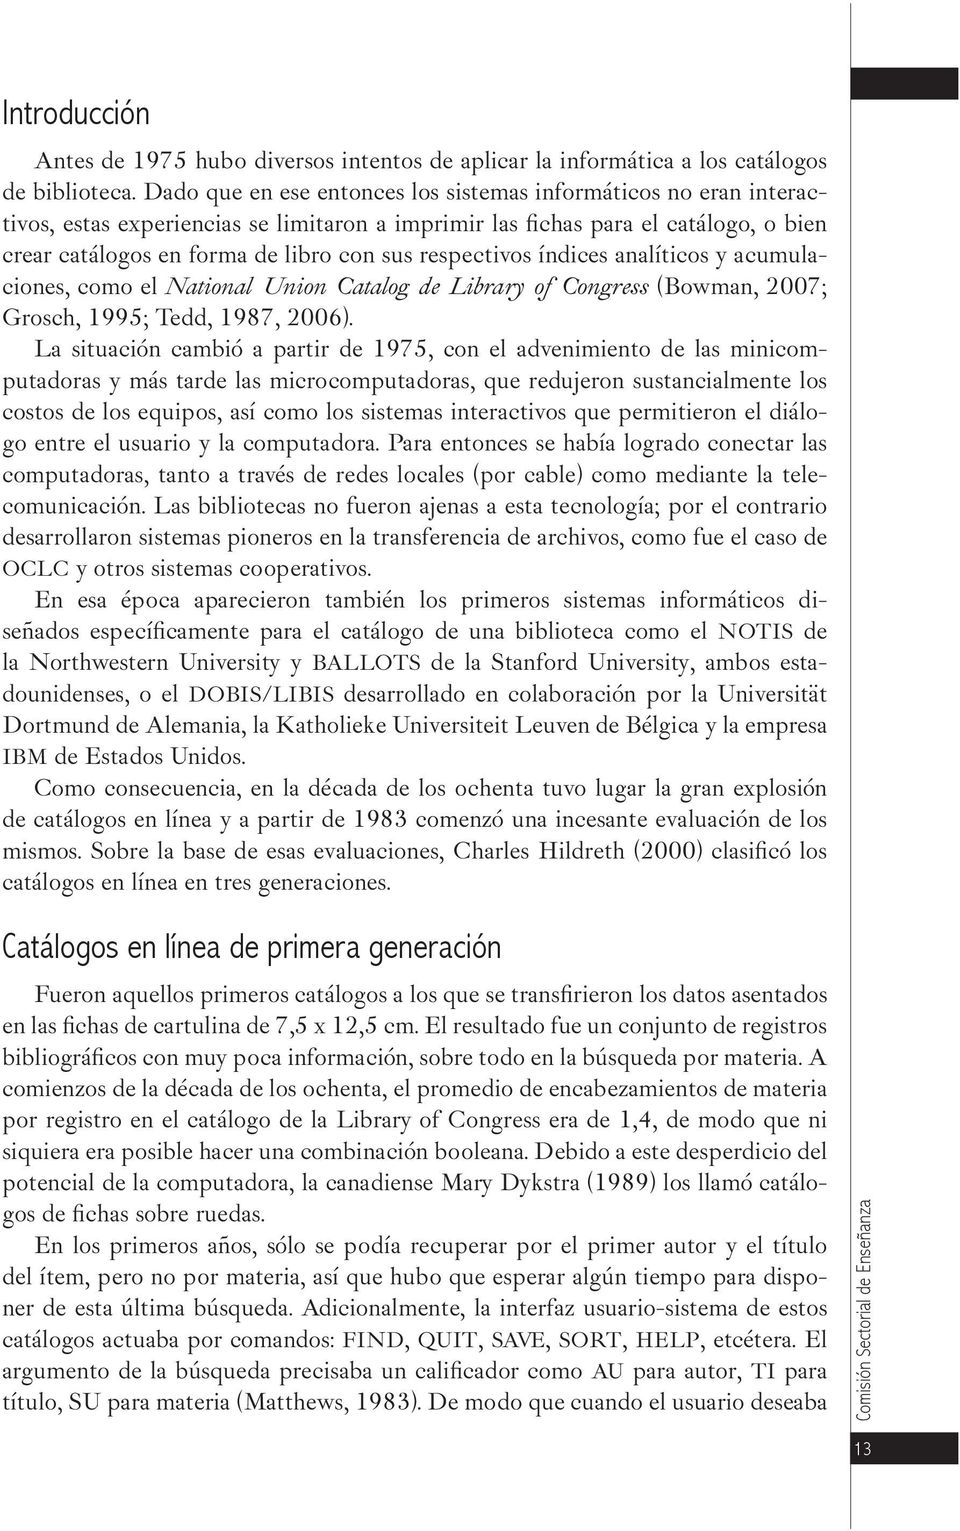 respectivos índices analíticos y acumulaciones, como el National Union Catalog de Library of Congress (Bowman, 2007; Grosch, 1995; Tedd, 1987, 2006).